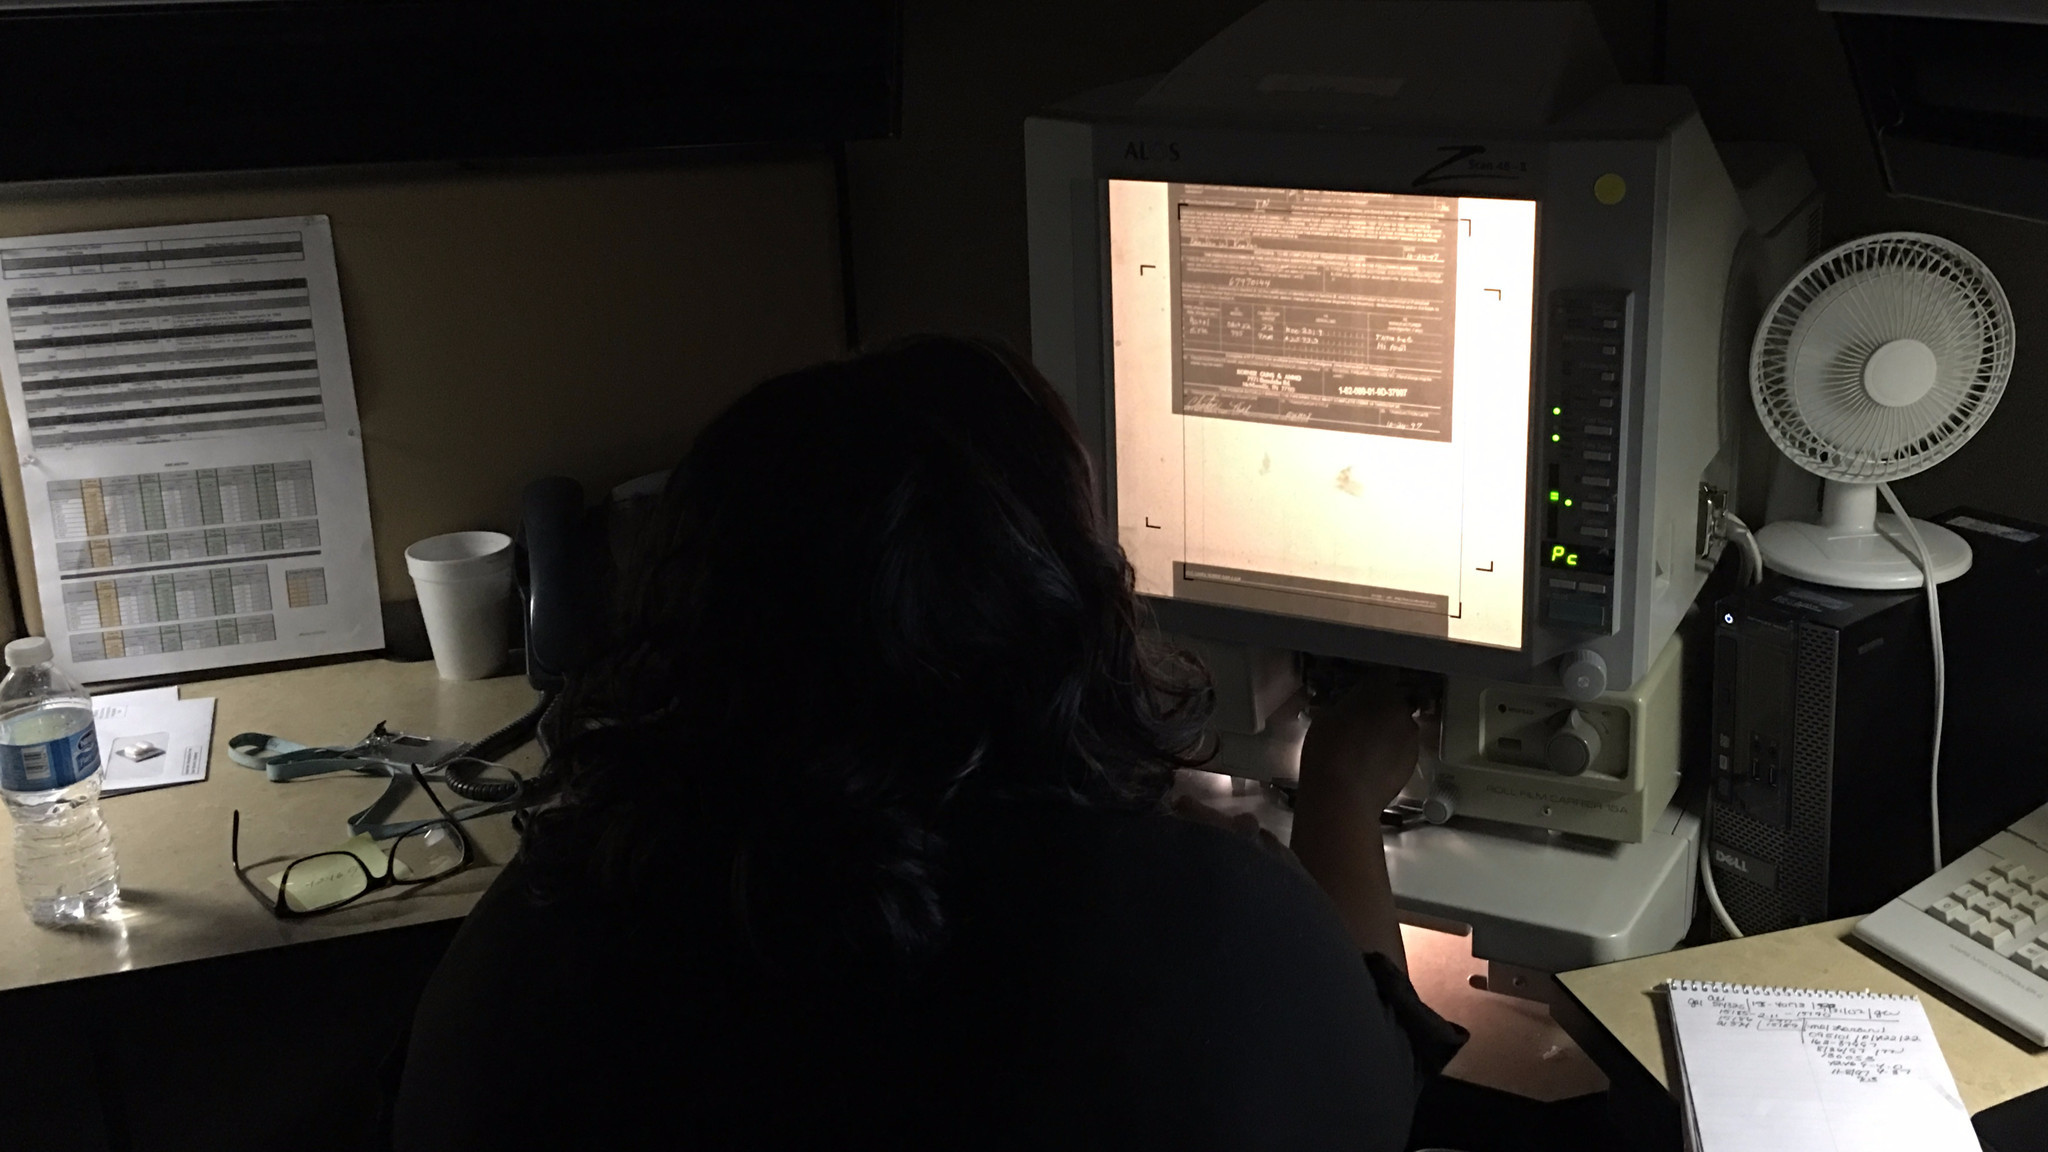 An analyst reviews firearms records on microfilm at the Bureau of Alcohol, Tobacco, Firearms and Explosives' National Tracing Center.